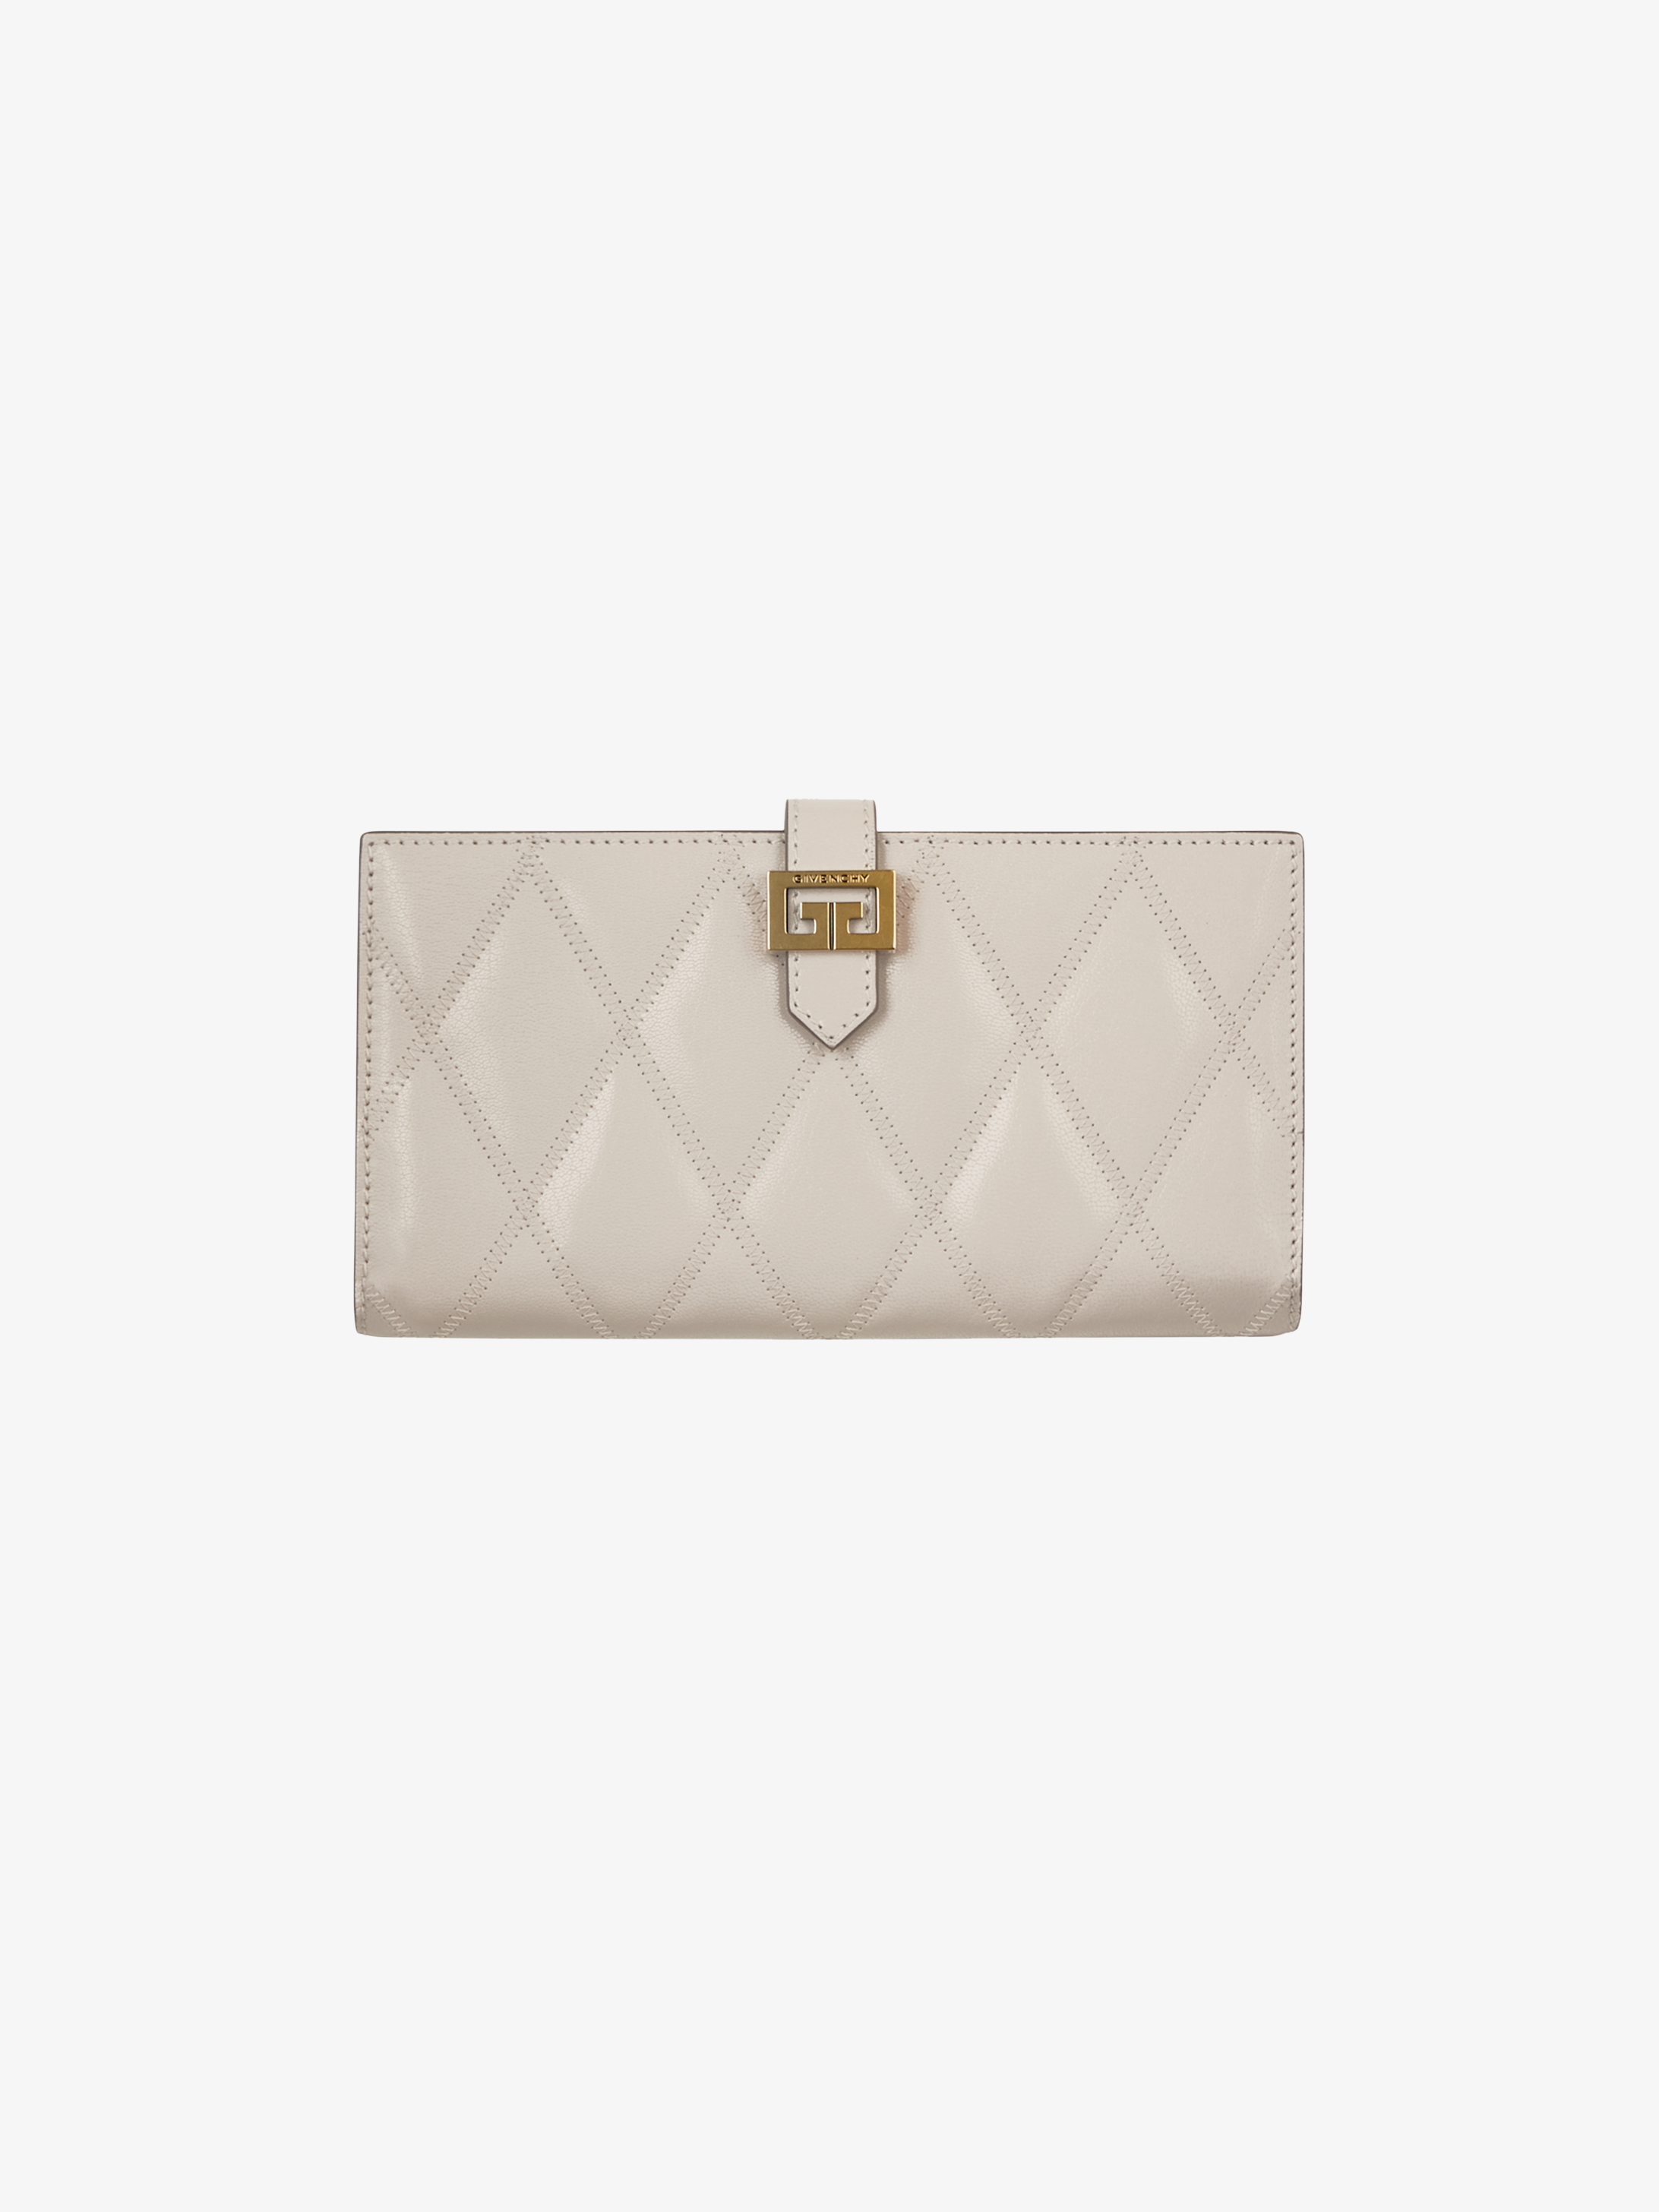 GV3 long wallet in diamond quilted leather